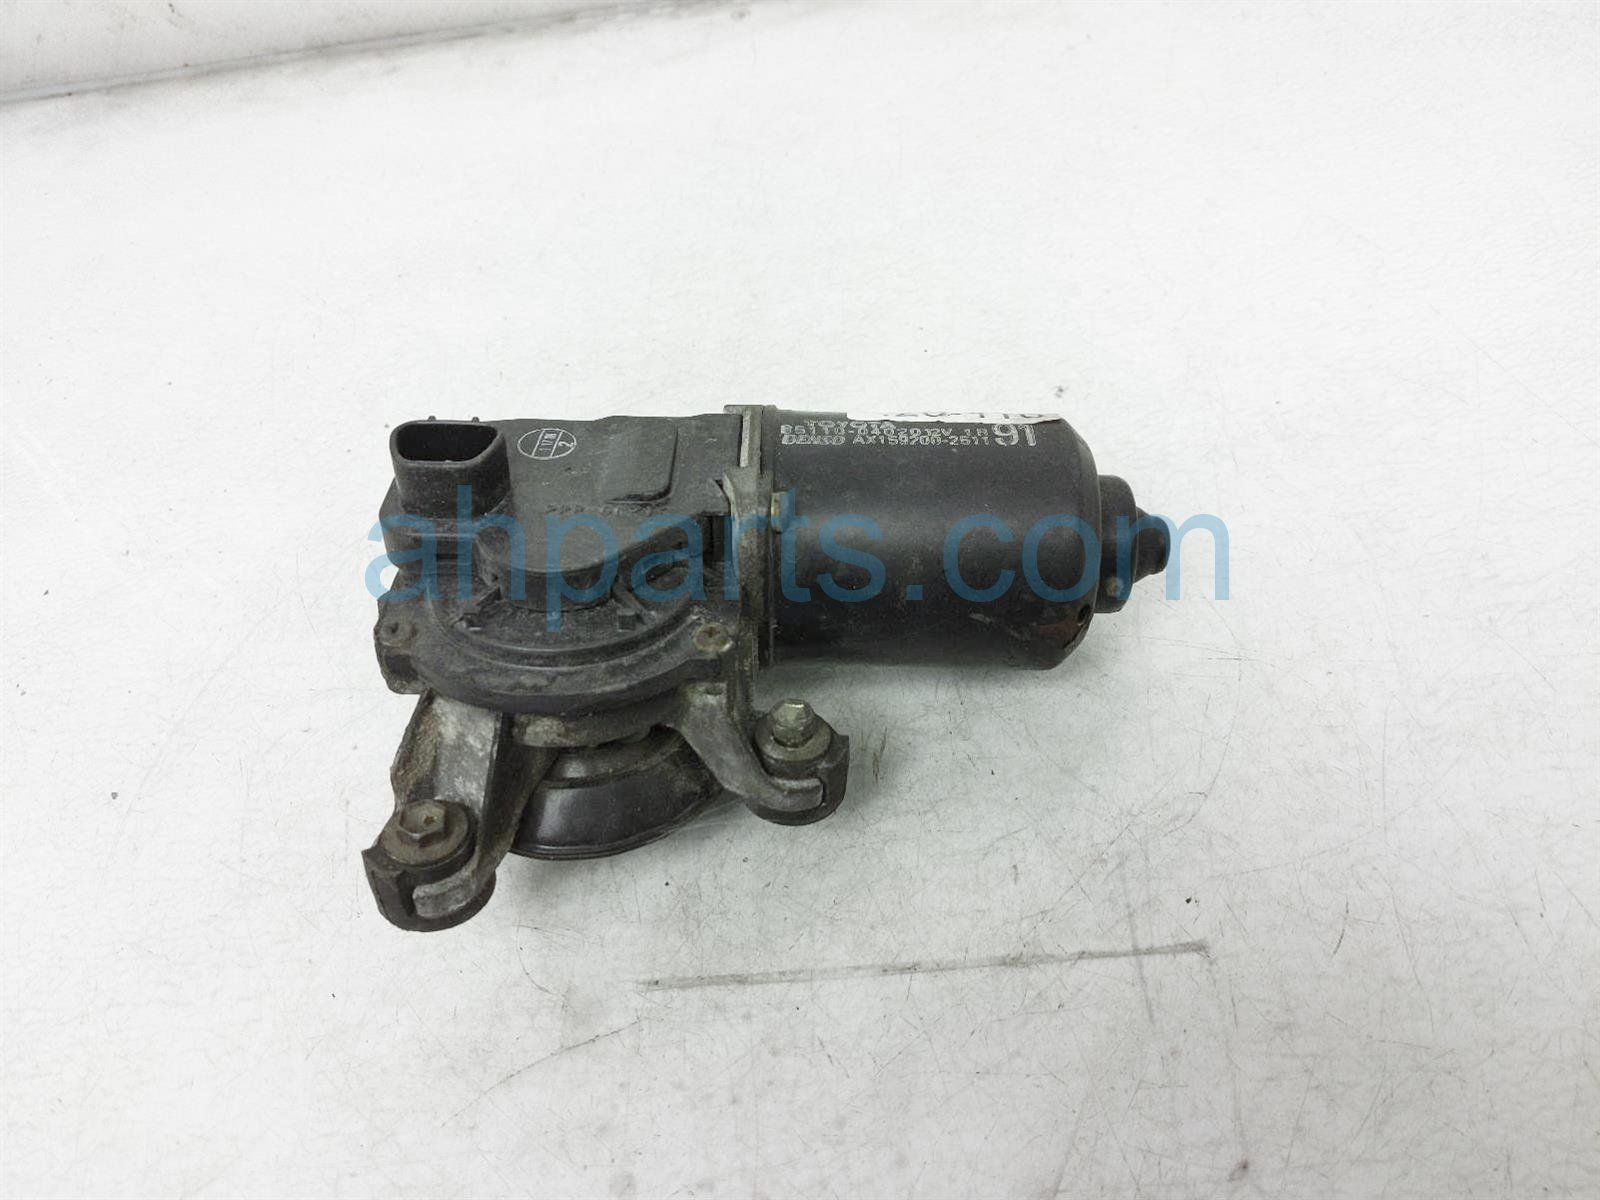 2000 Toyota Tacoma Front Arms Windshield Wiper Motor Only 85110 04010 Replacement